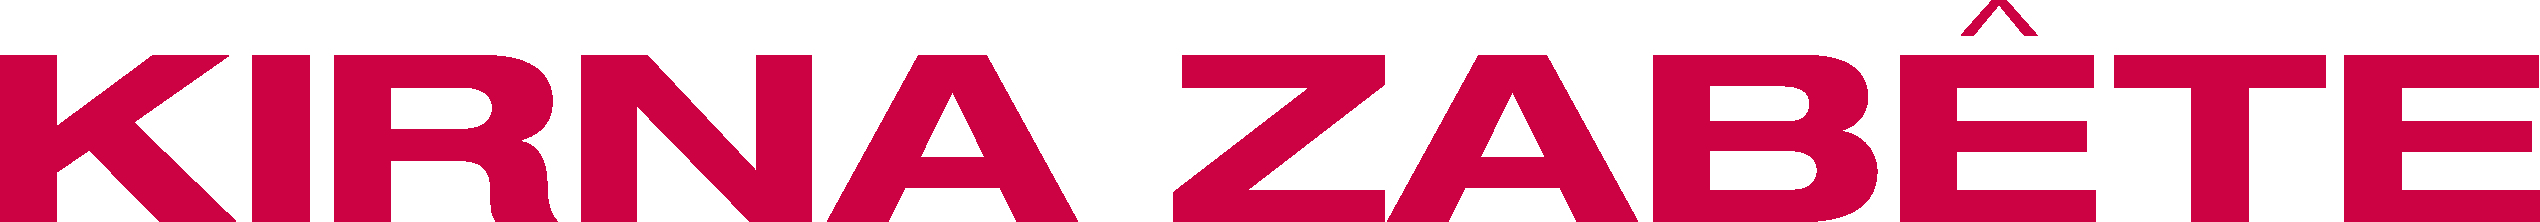 Image result for kirna zabete small red logo in red